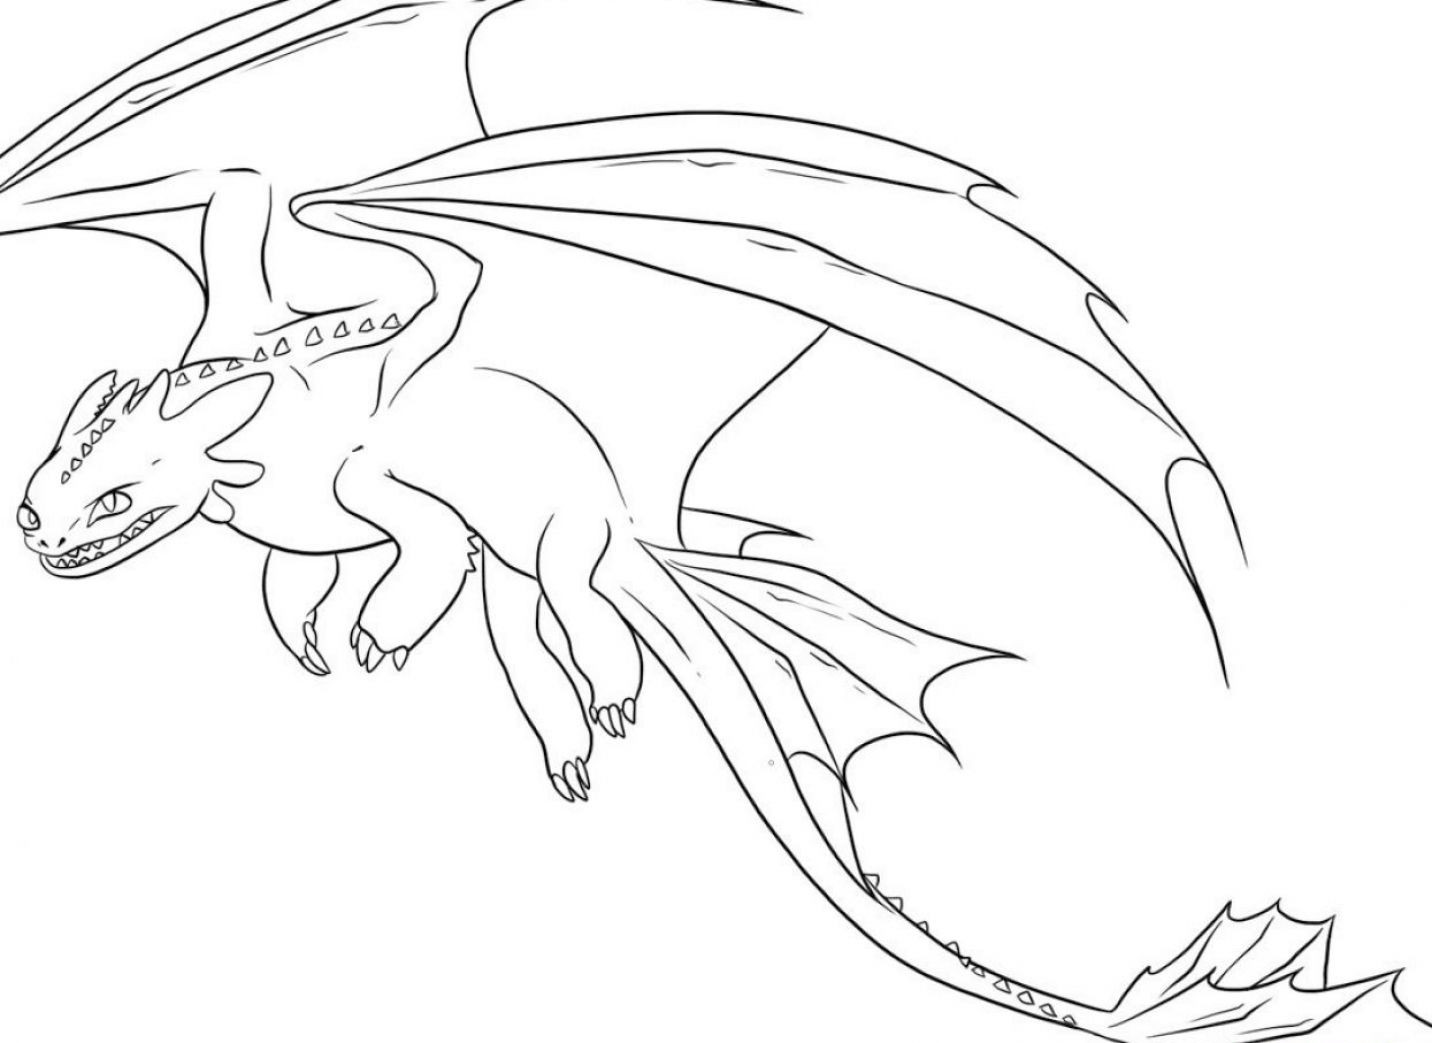 Coloring Pages For Kids Dragons  Free Printable Dragon Coloring Pages For Kids